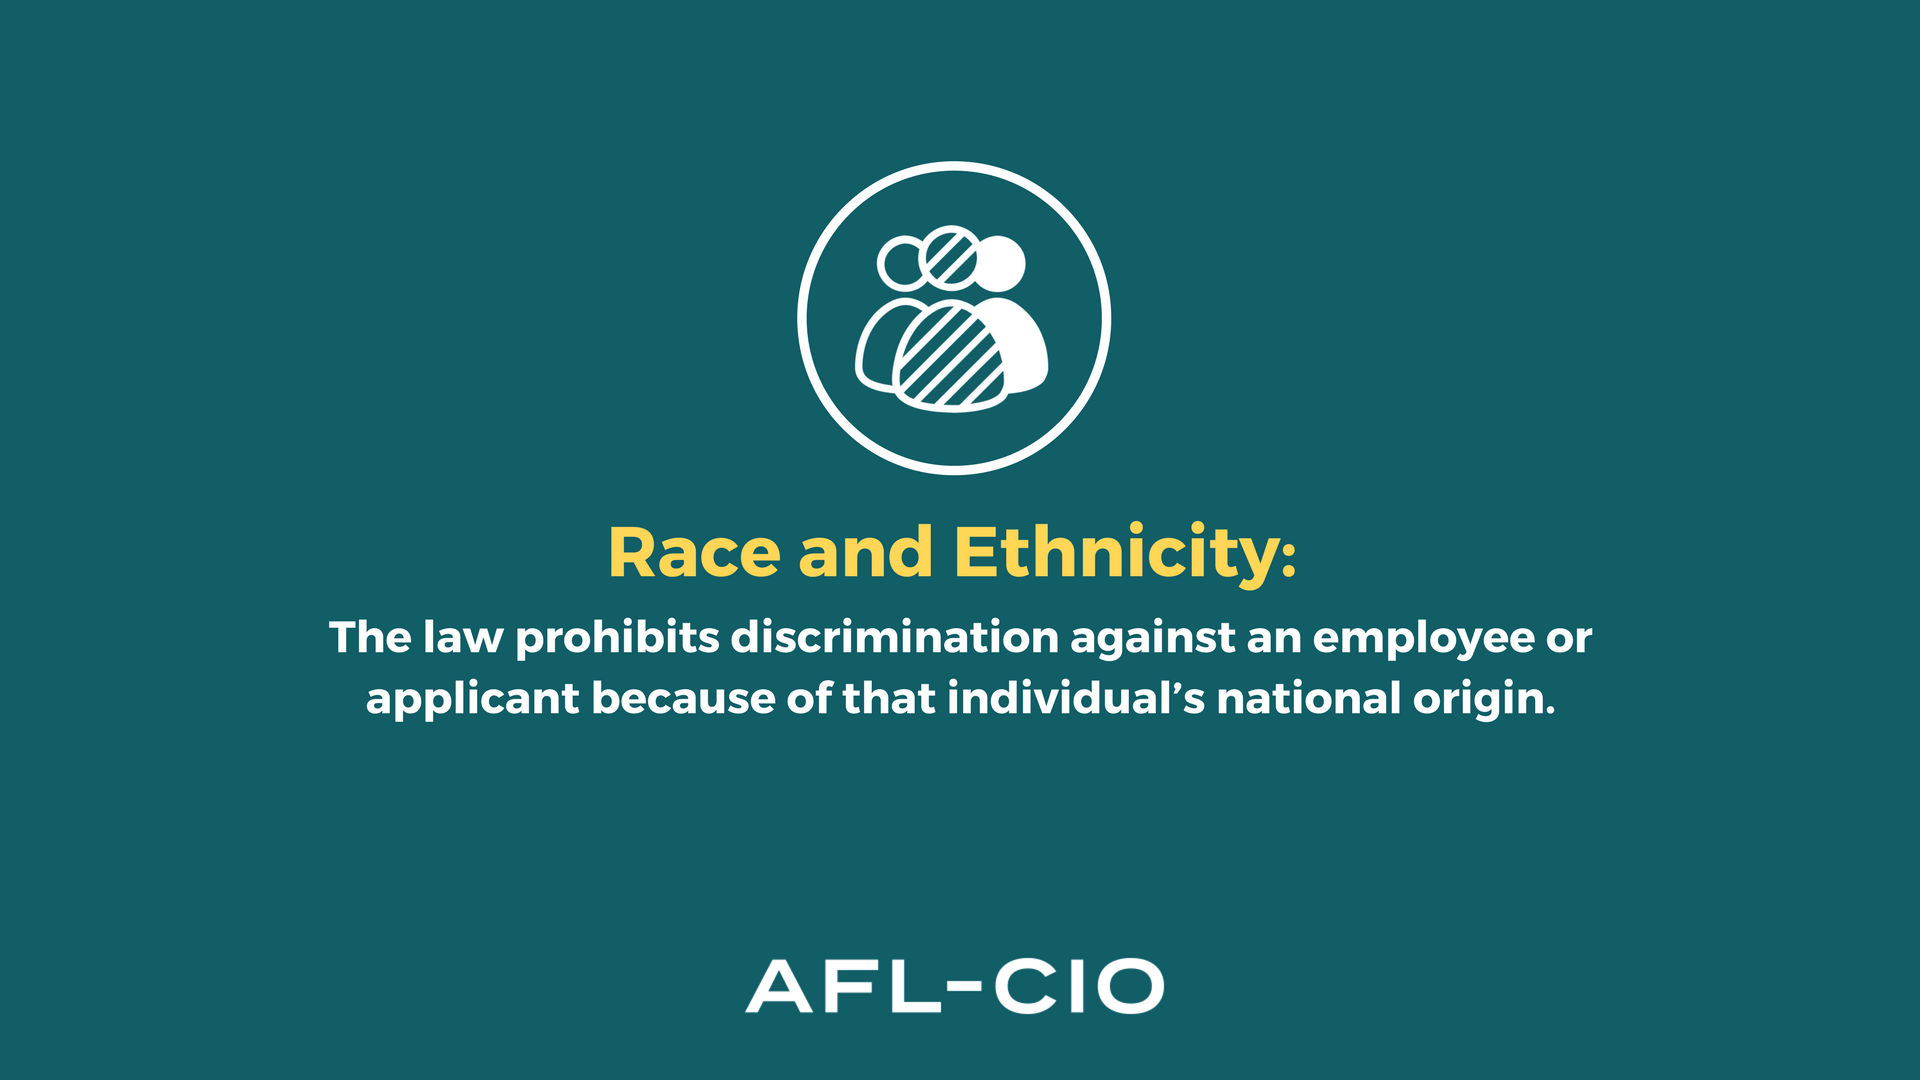 Race or Ethnicity: The law prohibits discrimination against an employee or applicant because of that individual's national origin.